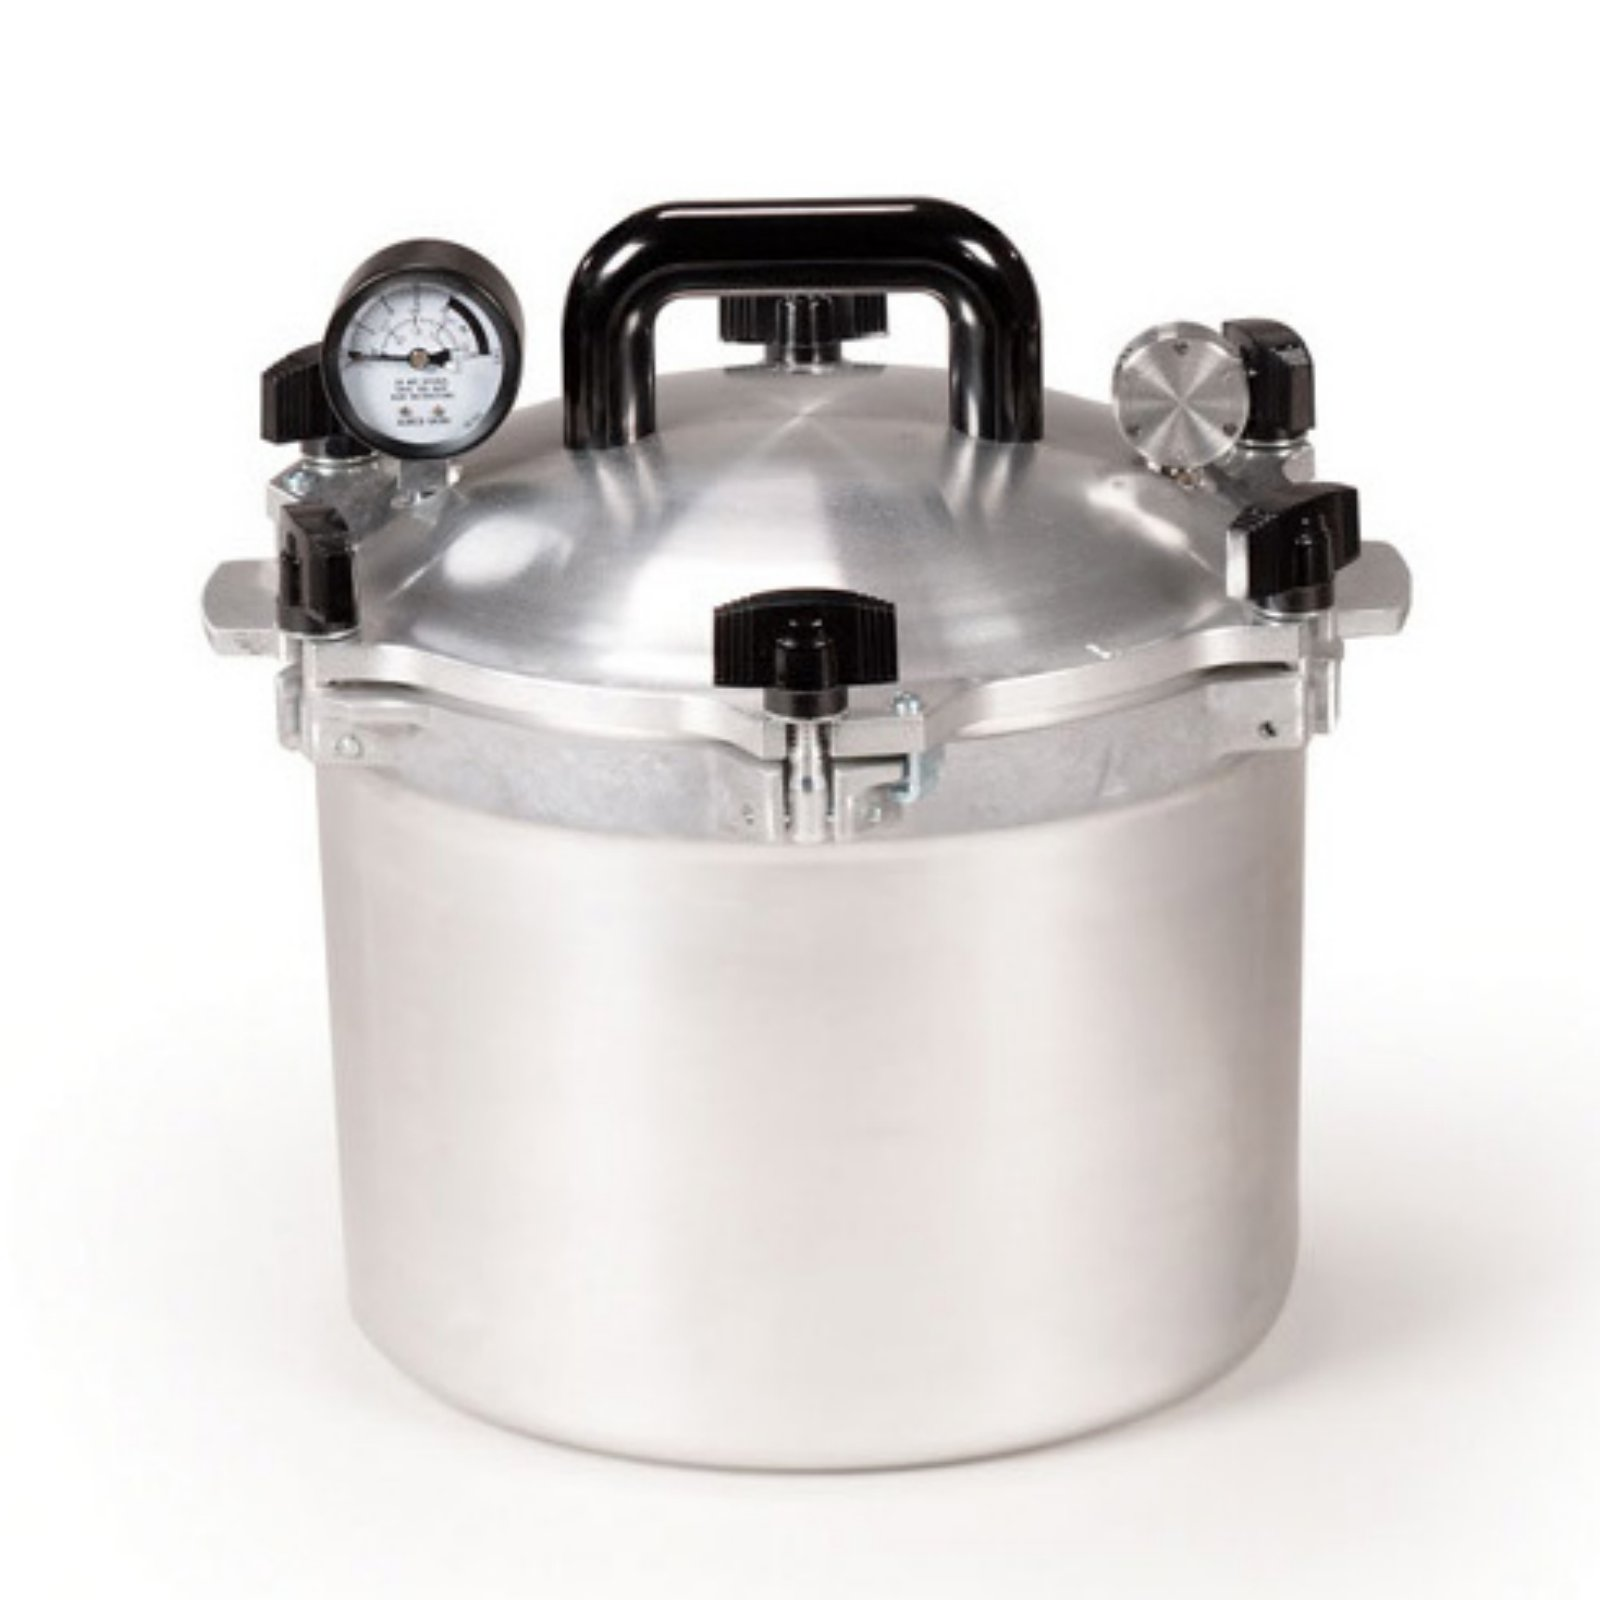 All American 910 10.5 Quart Pressure Cooker Canner